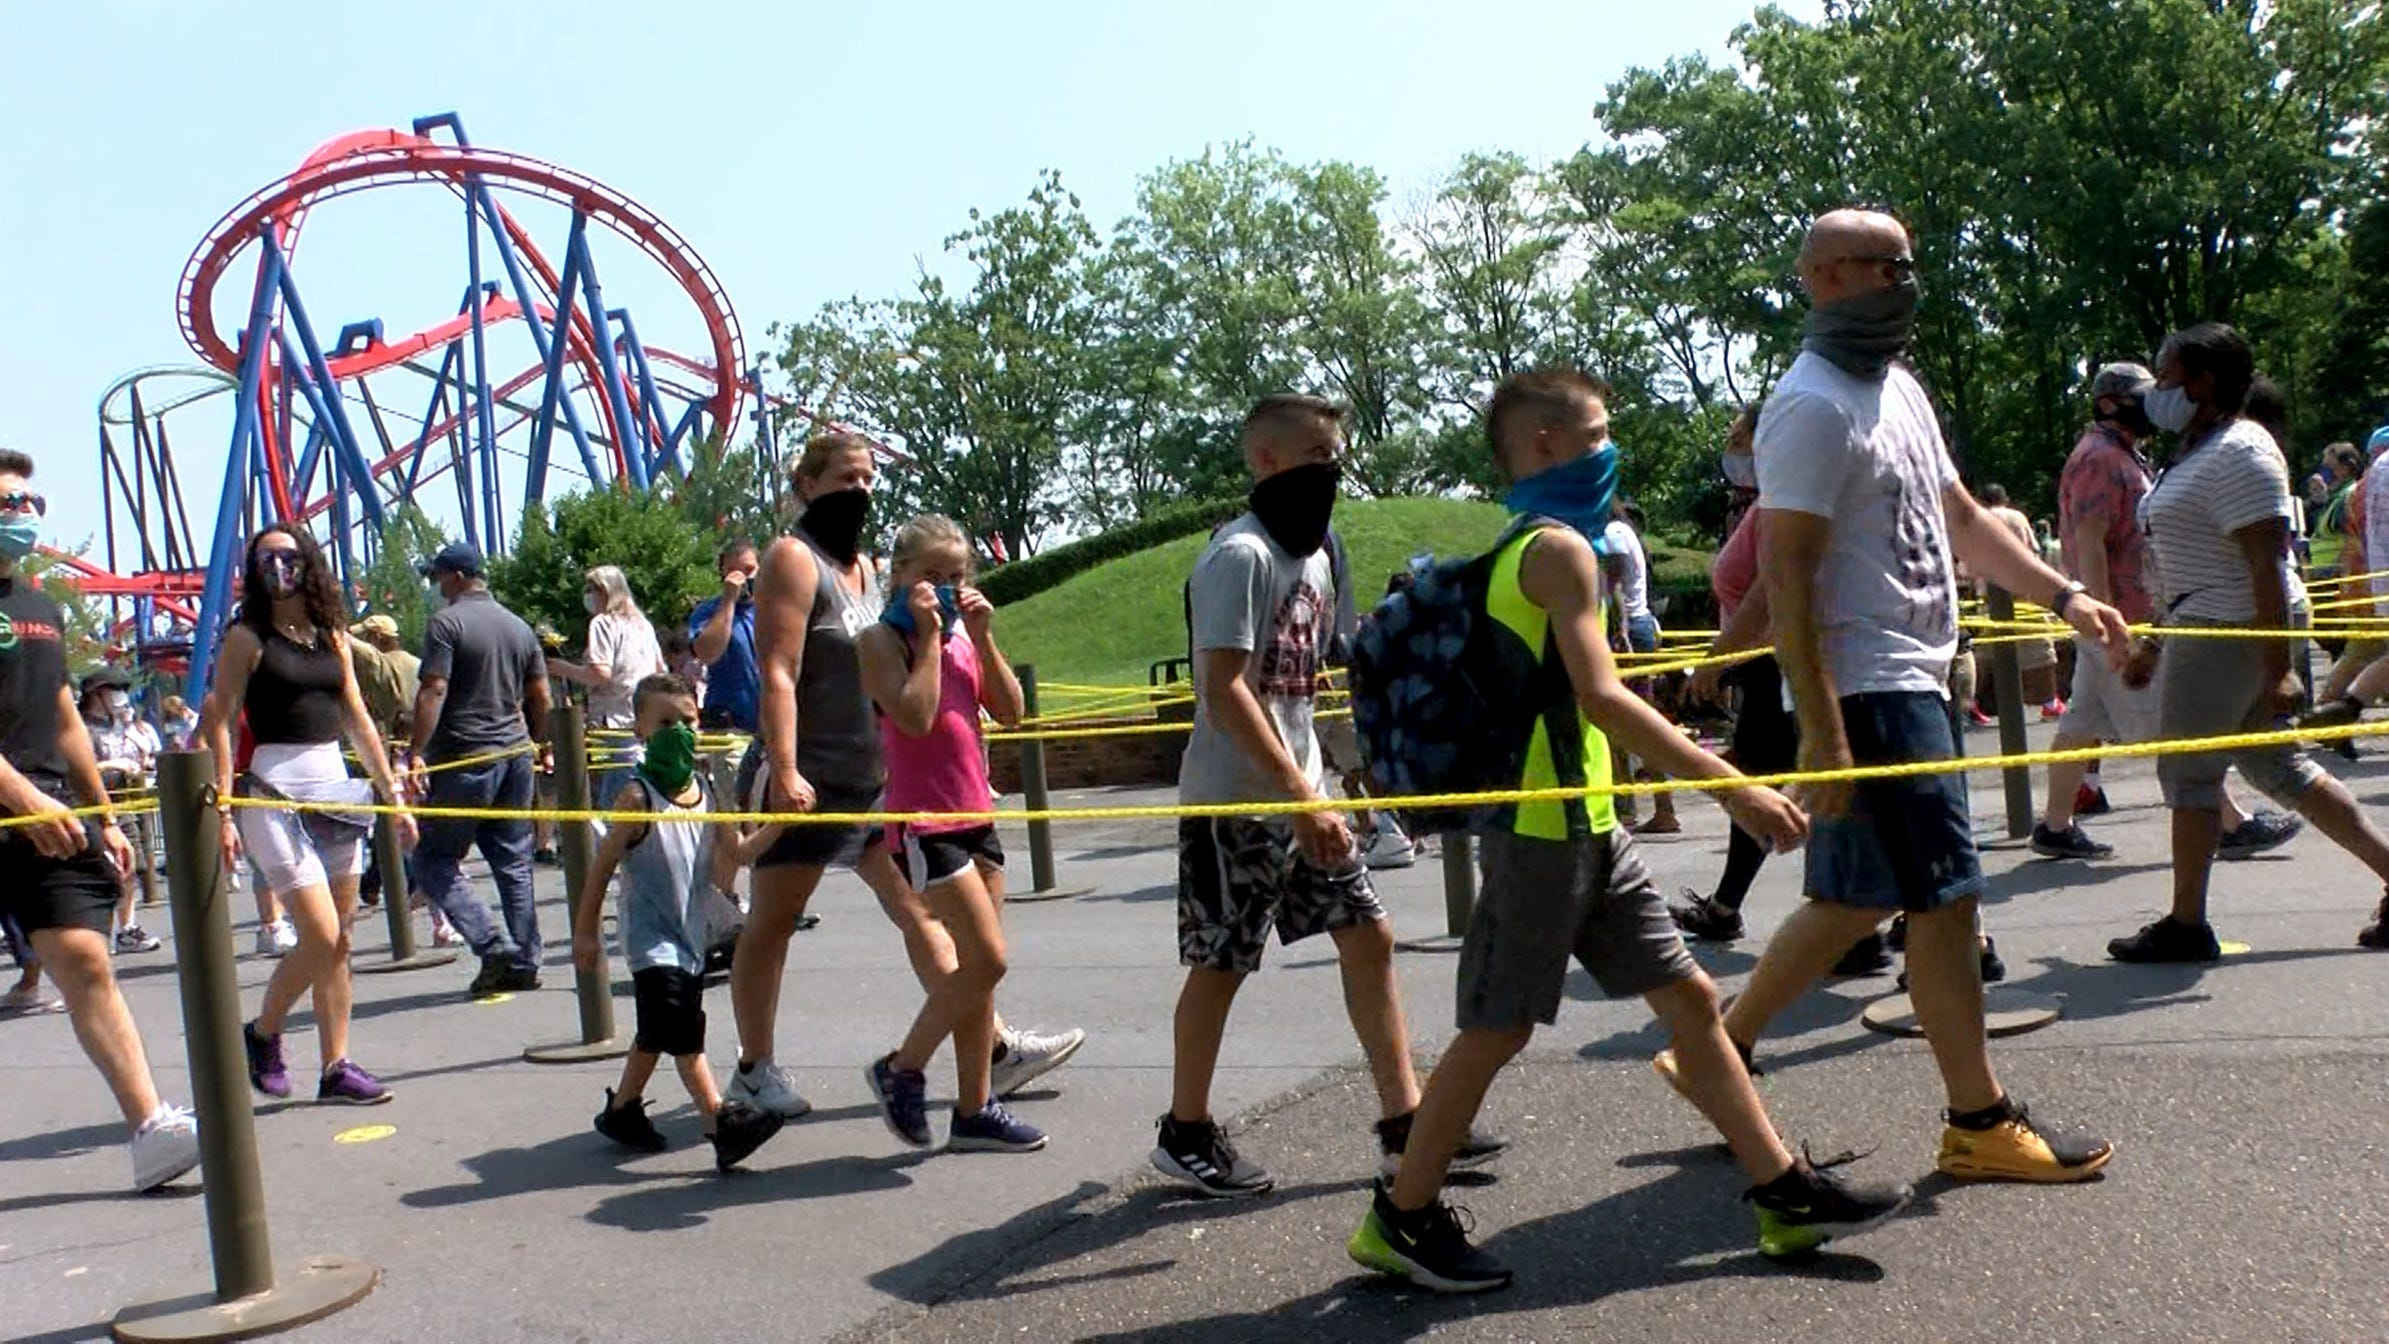 Crowds flock to Six Flags Great Adventure for opening day